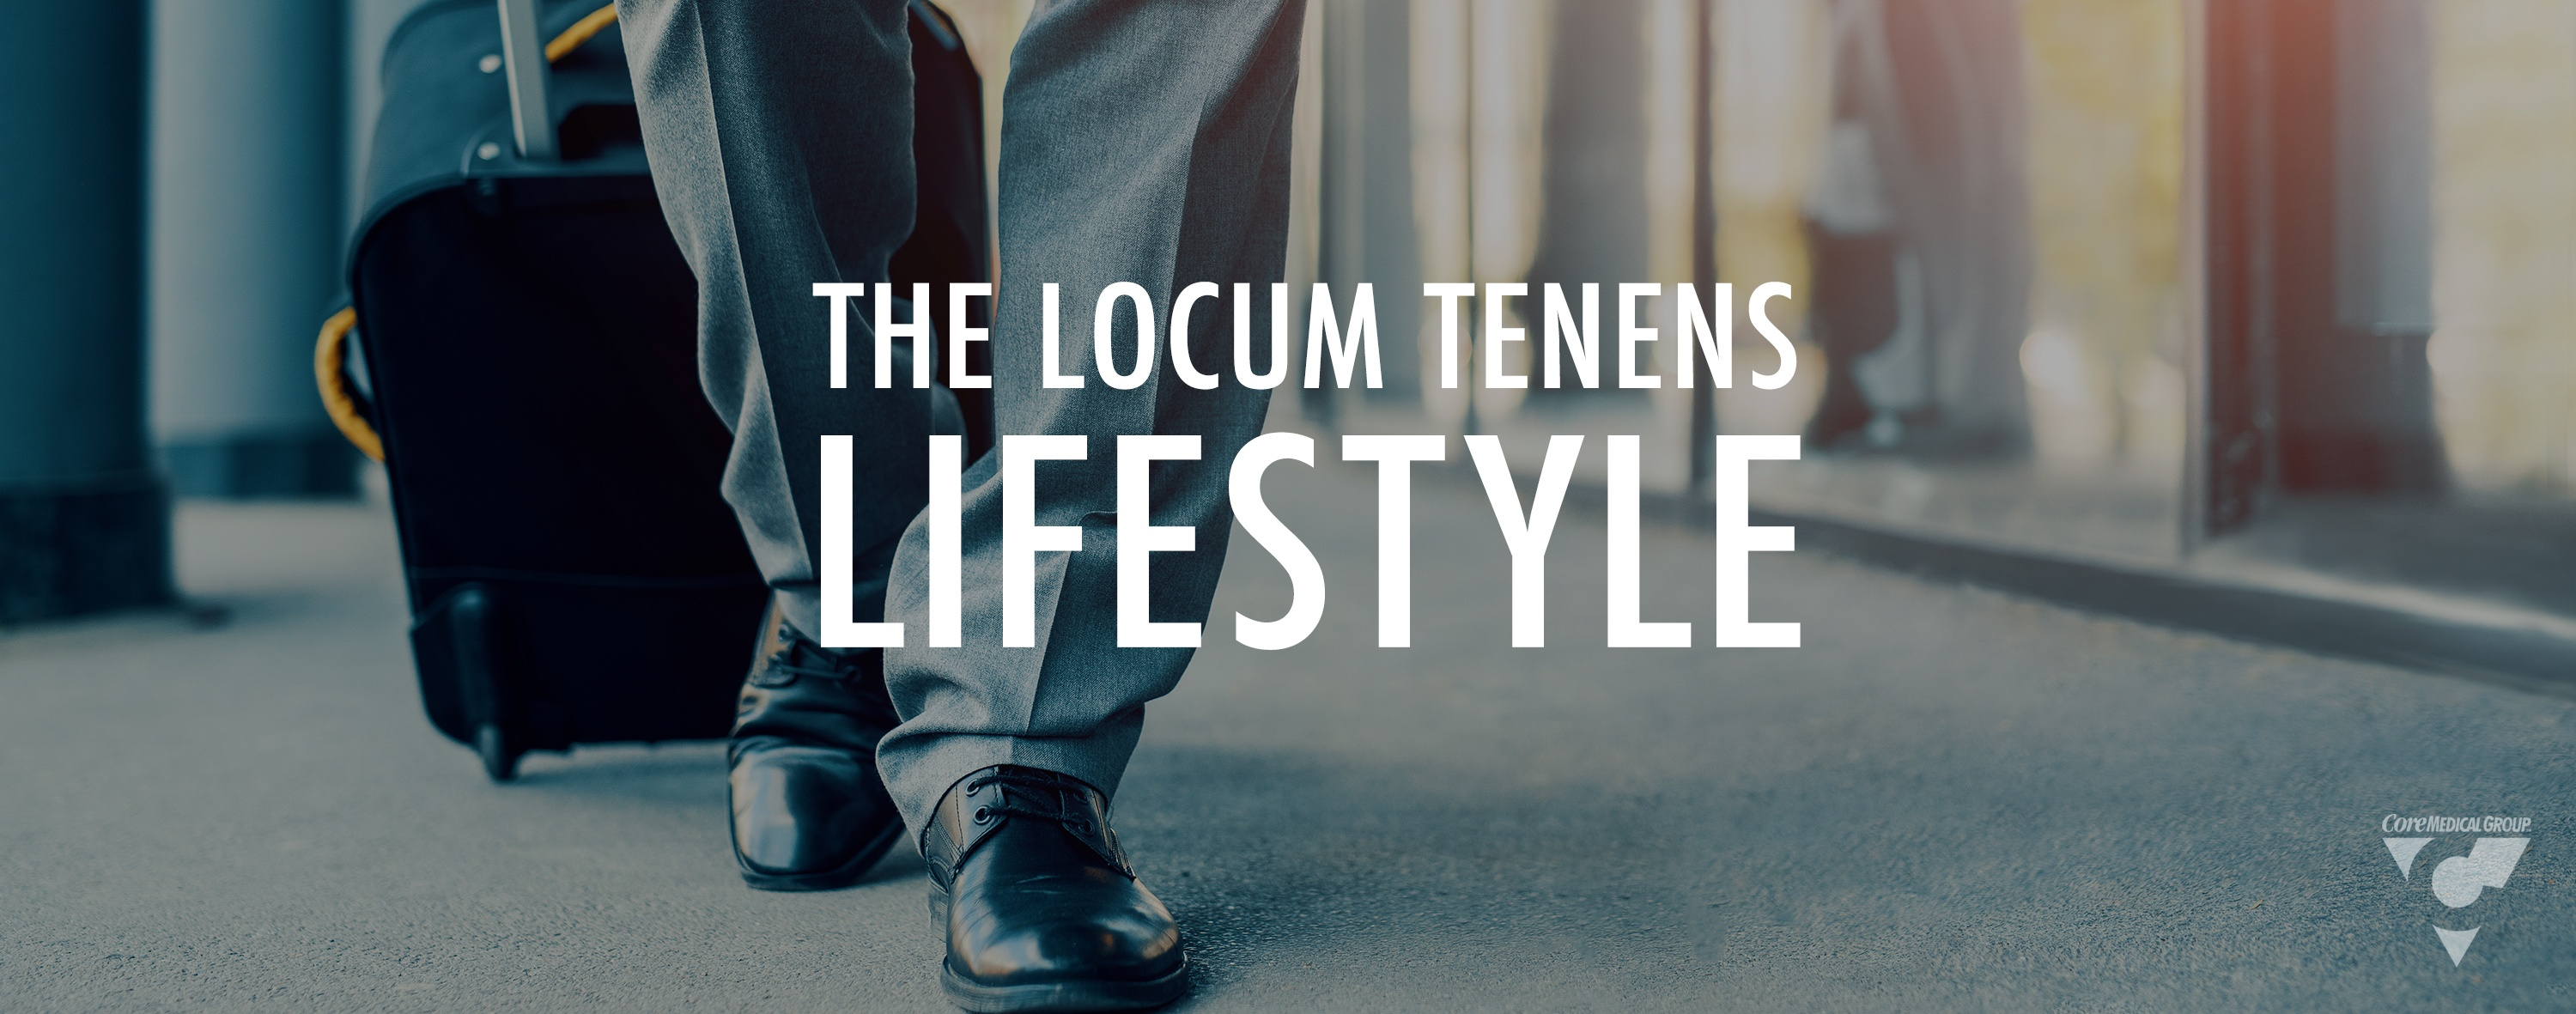 The_Locum_Tenens_Lifestyle_Blog_Featured_Image